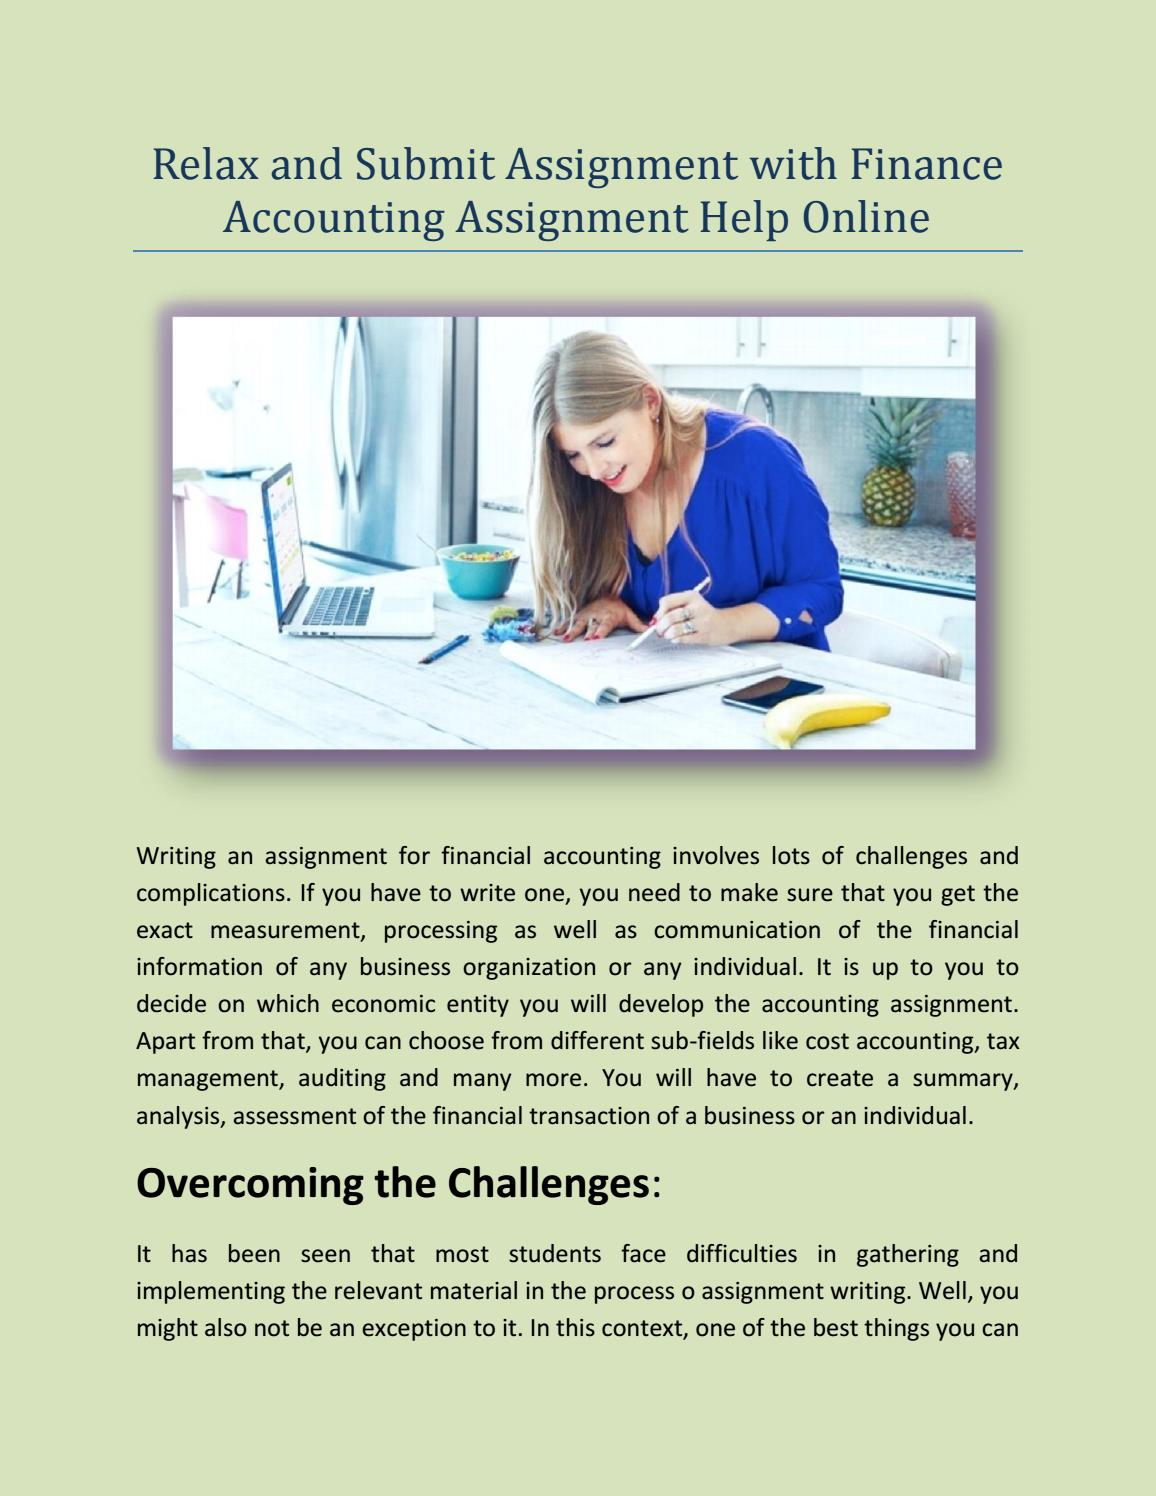 relax and submit assignment finance accounting assignment relax and submit assignment finance accounting assignment help online by ratnesh kumar issuu